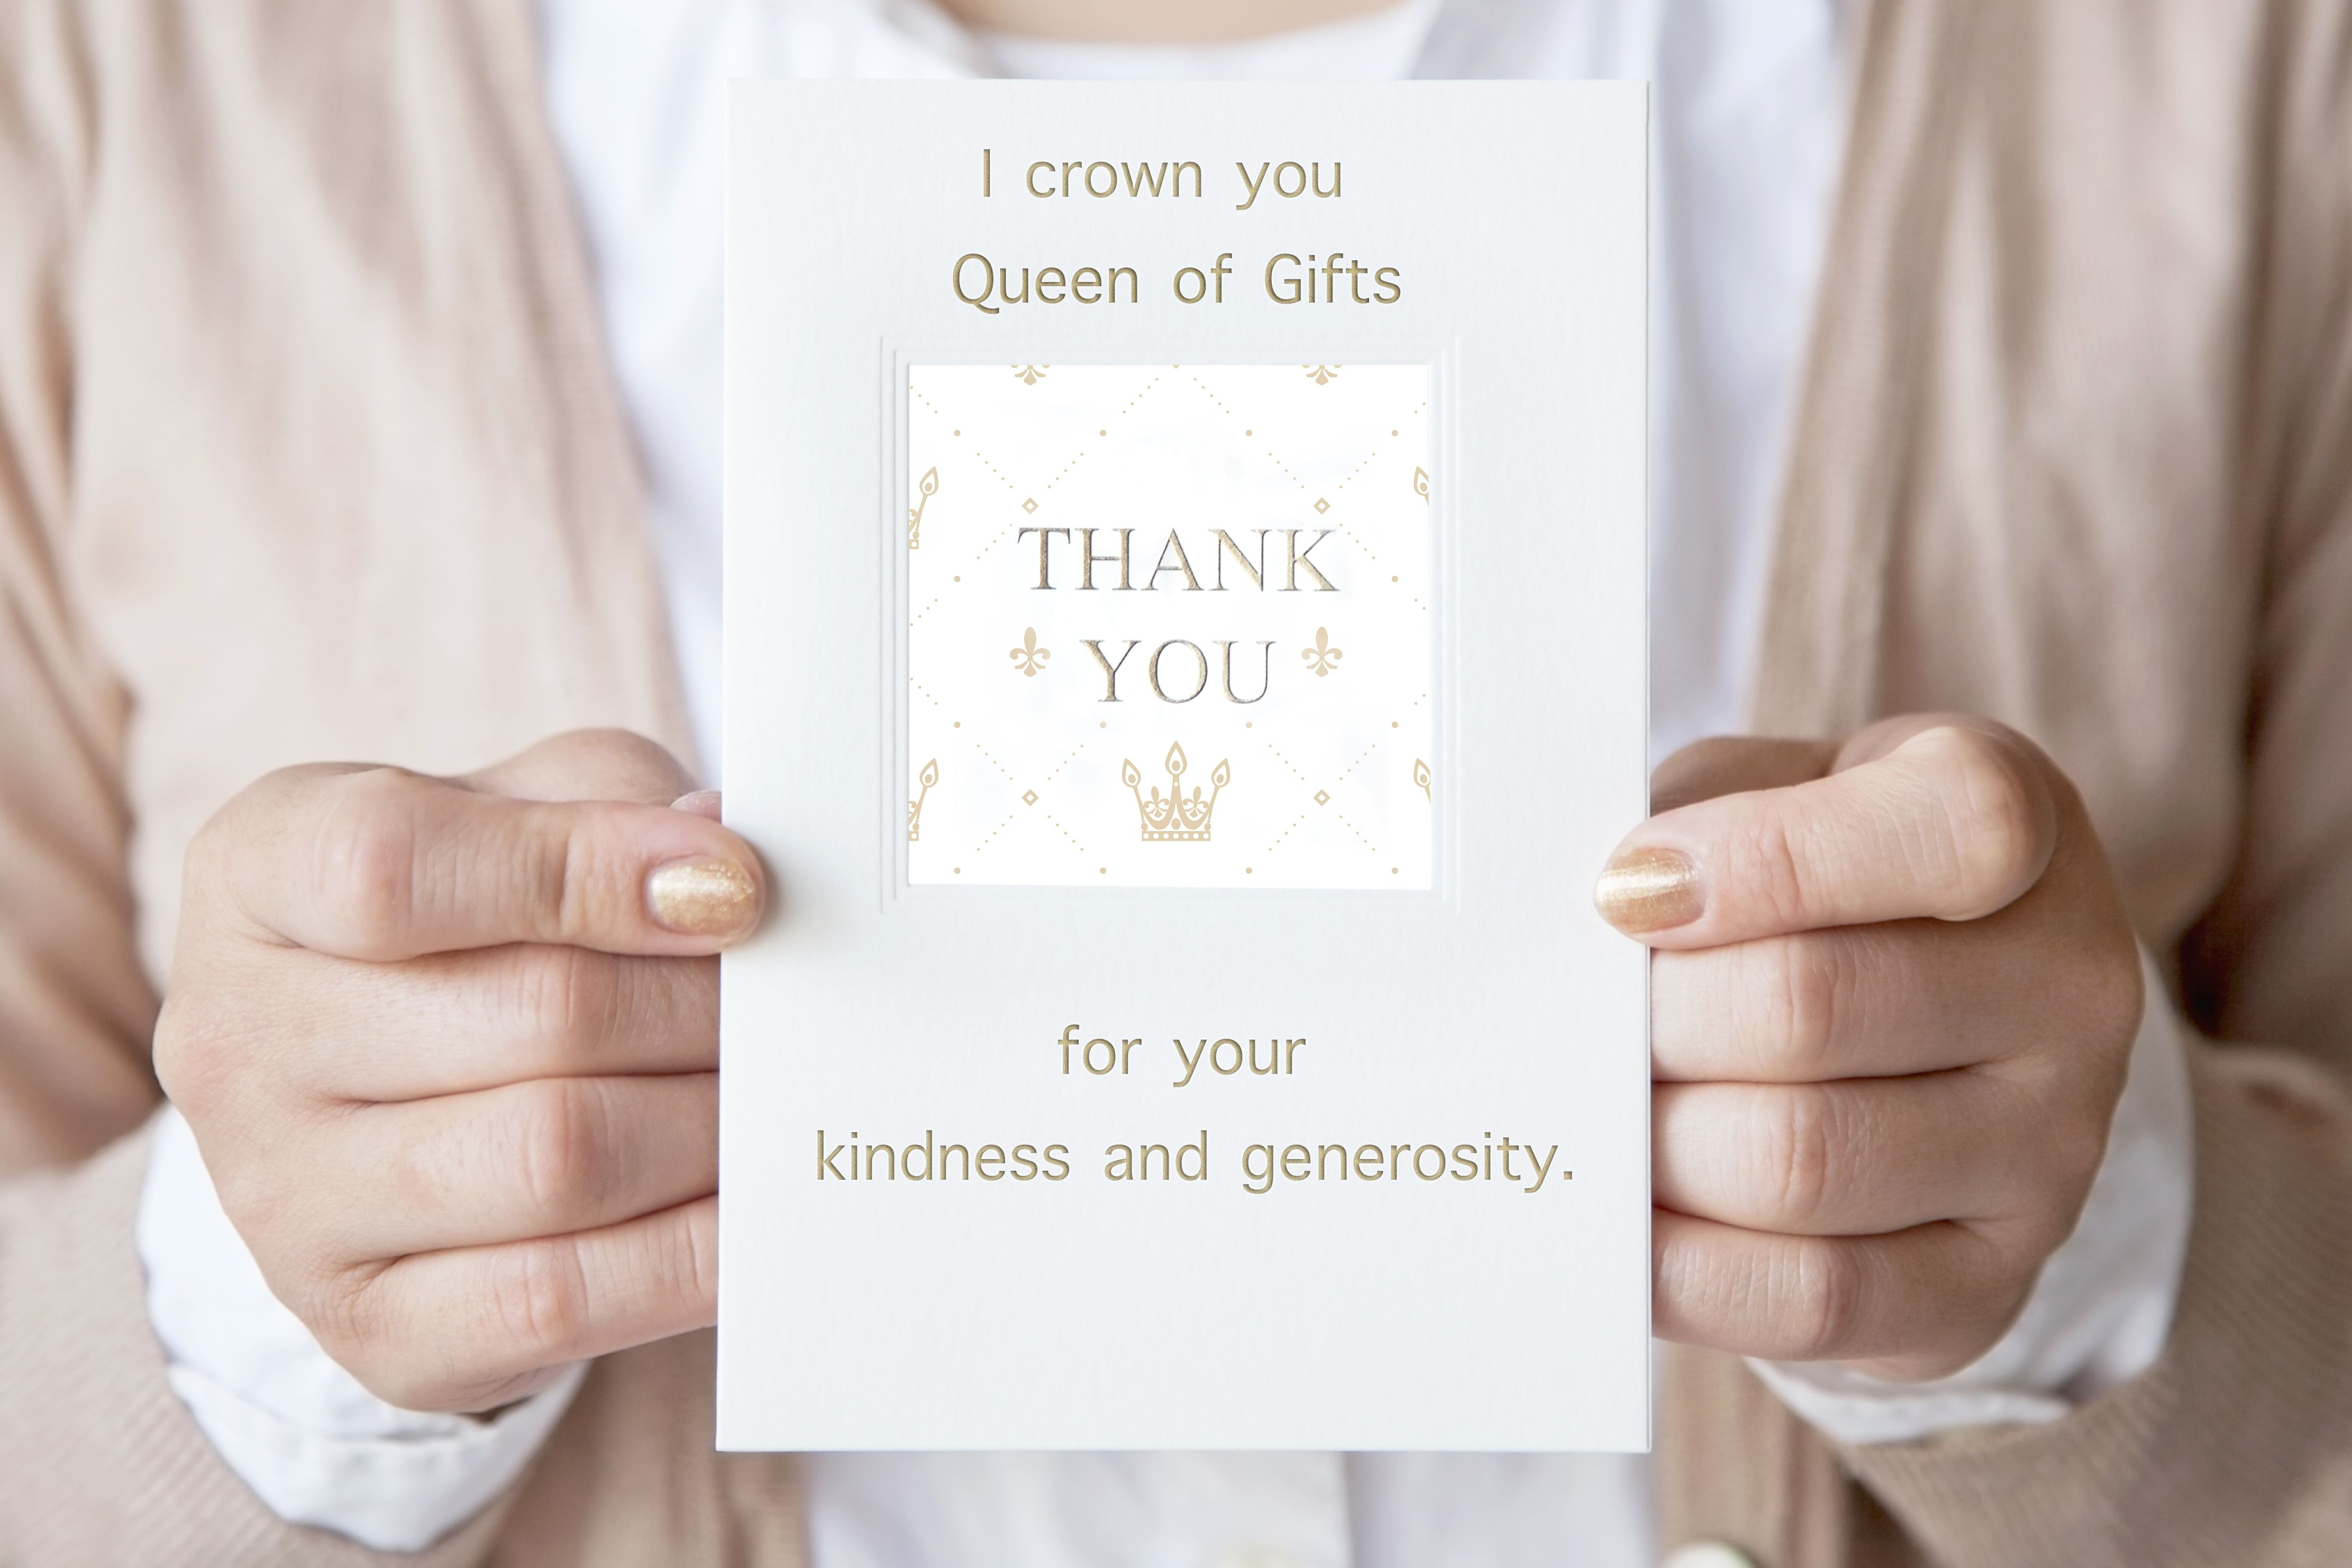 004 Impressive Thank You Note Template For Baby Shower Gift Inspiration  Card Letter SampleFull